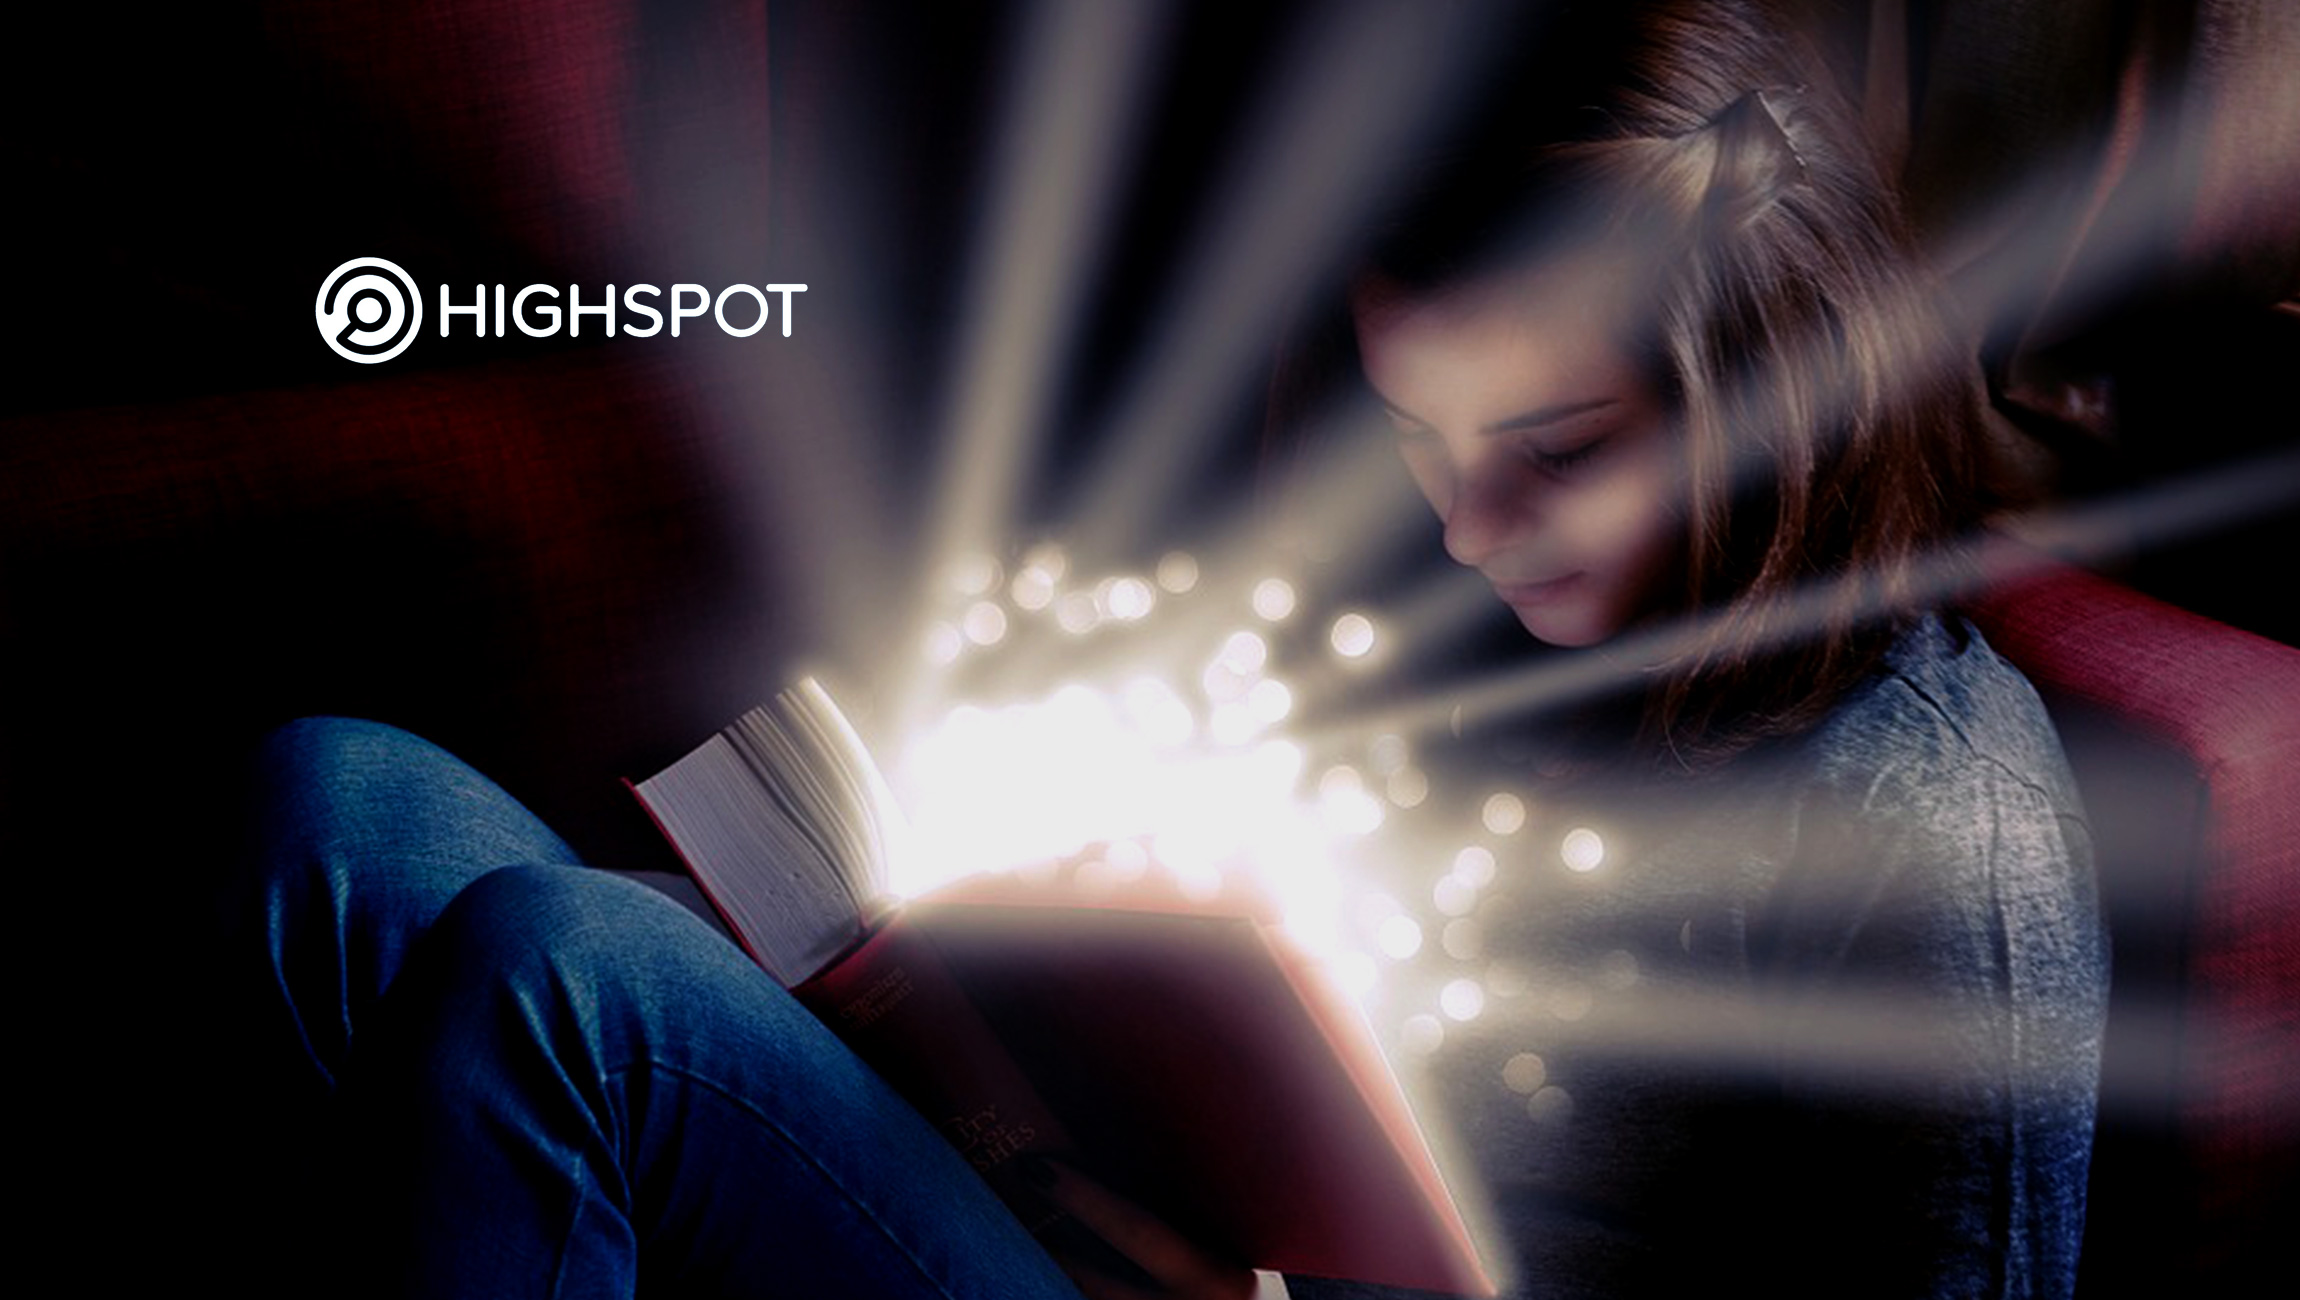 Highspot Launches Industry-First SmartPage Technology to Turn Sales Strategy into Action